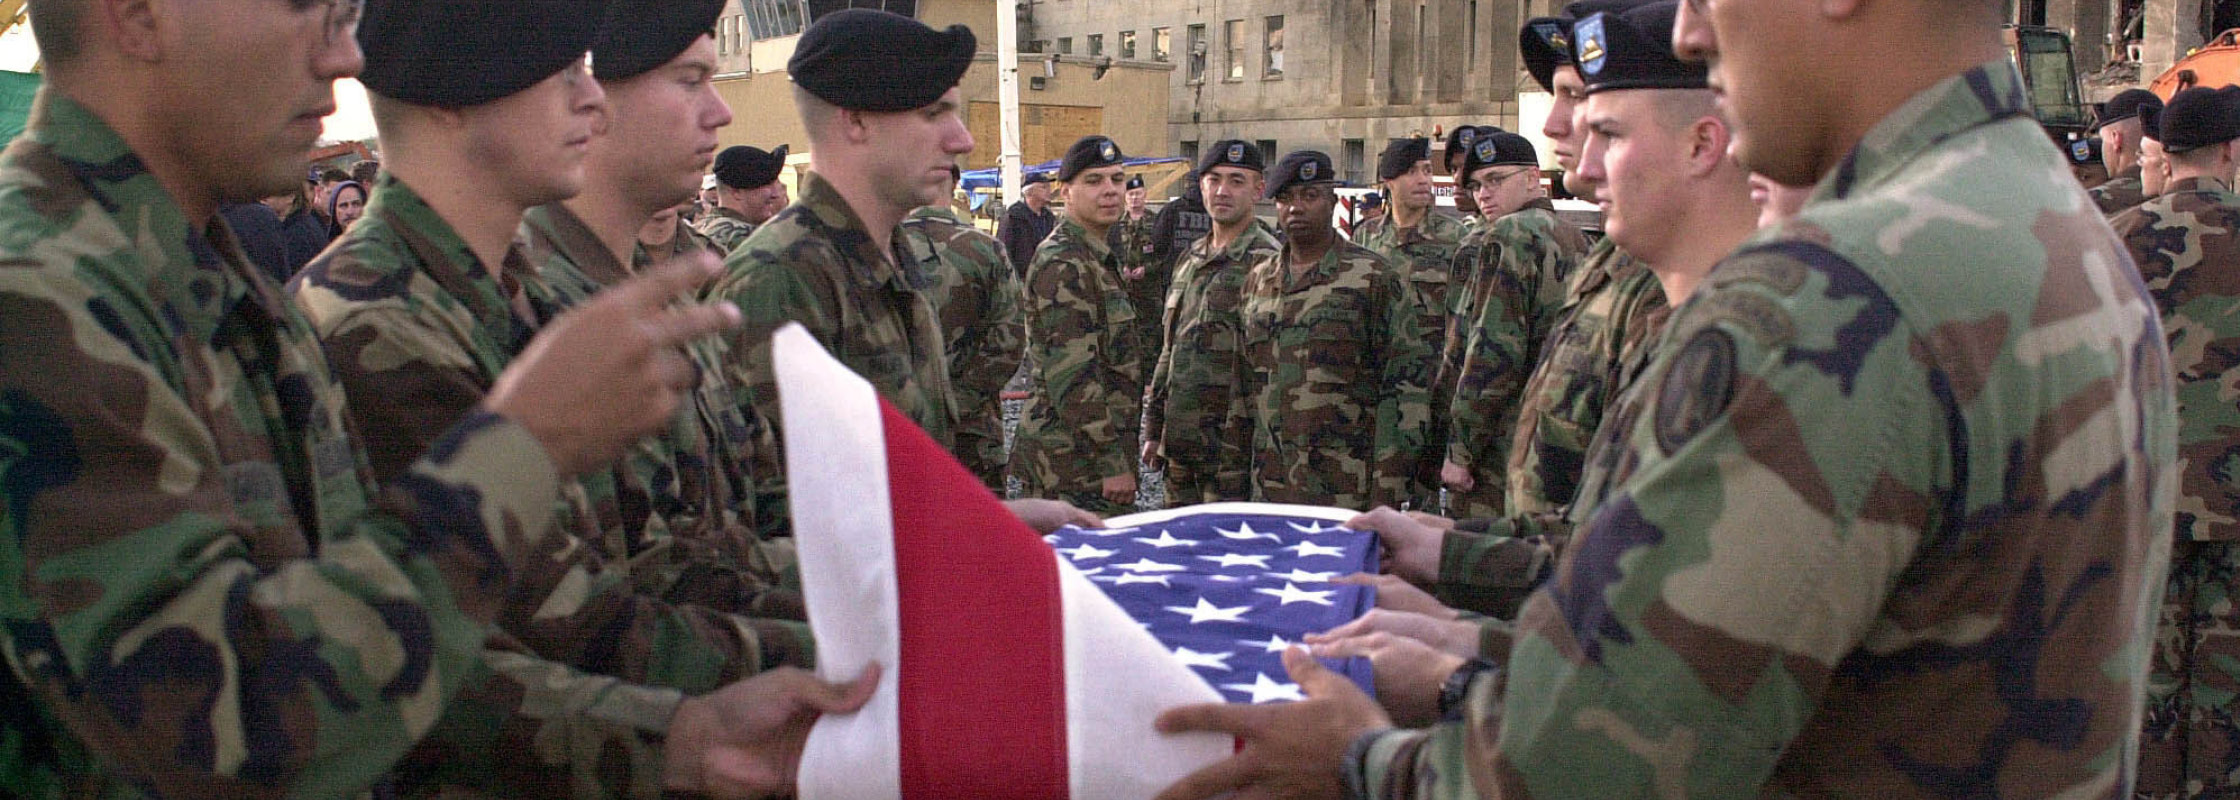 Image of American Soldiers Folding the American Flag During a 9/11 Ceremony